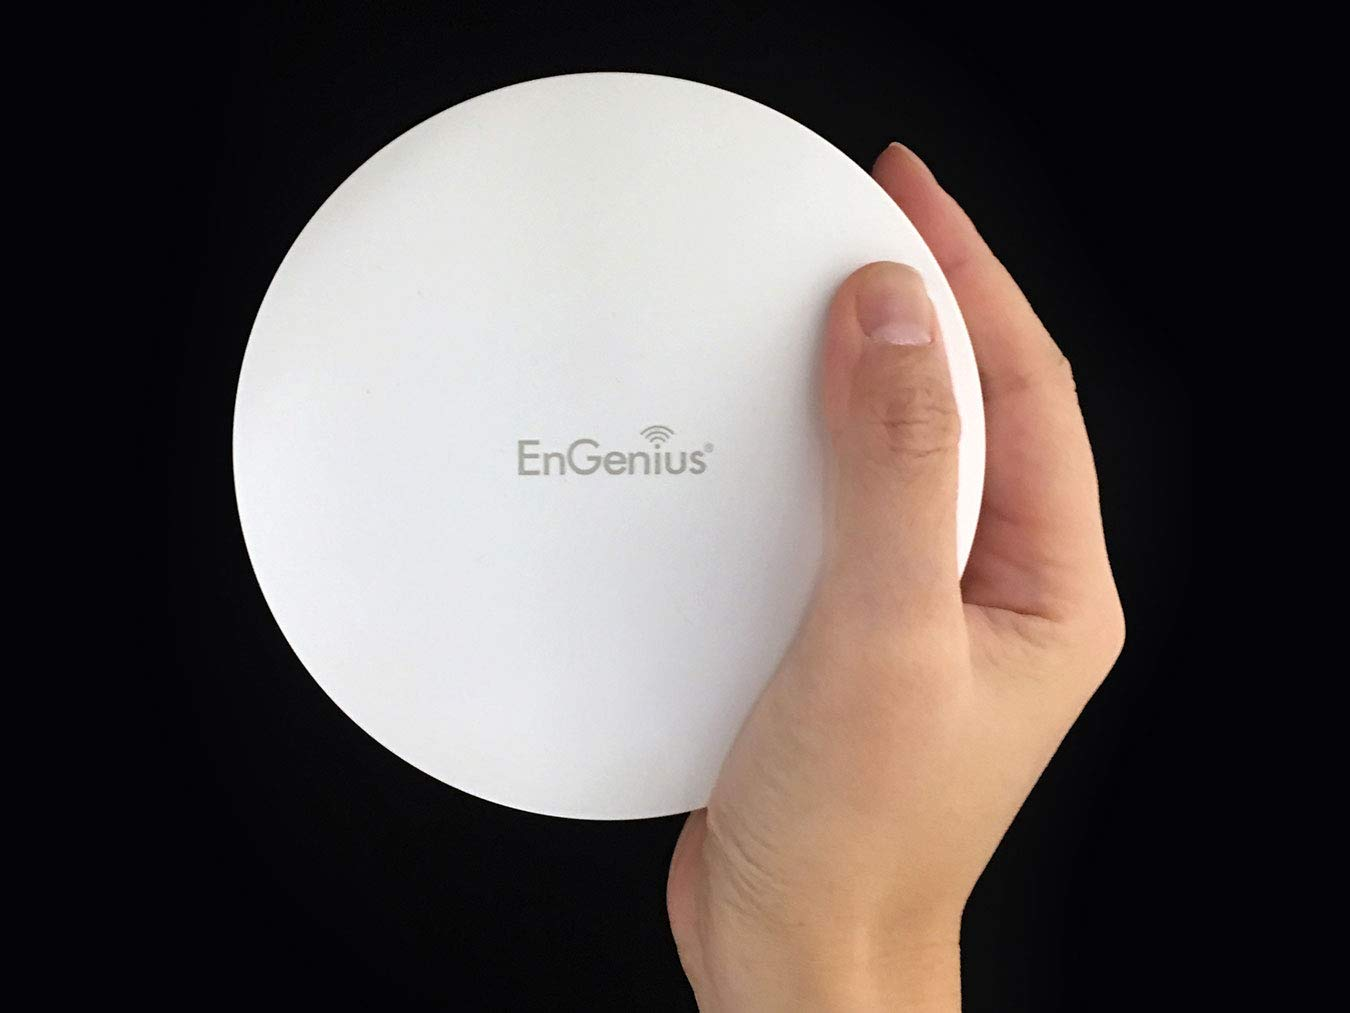 EnGenius Technologies EAP1250 802.11ac Wave 2 Concurrent Dual-band, Standard PoE, Compact size Indoor Wireless Access Point